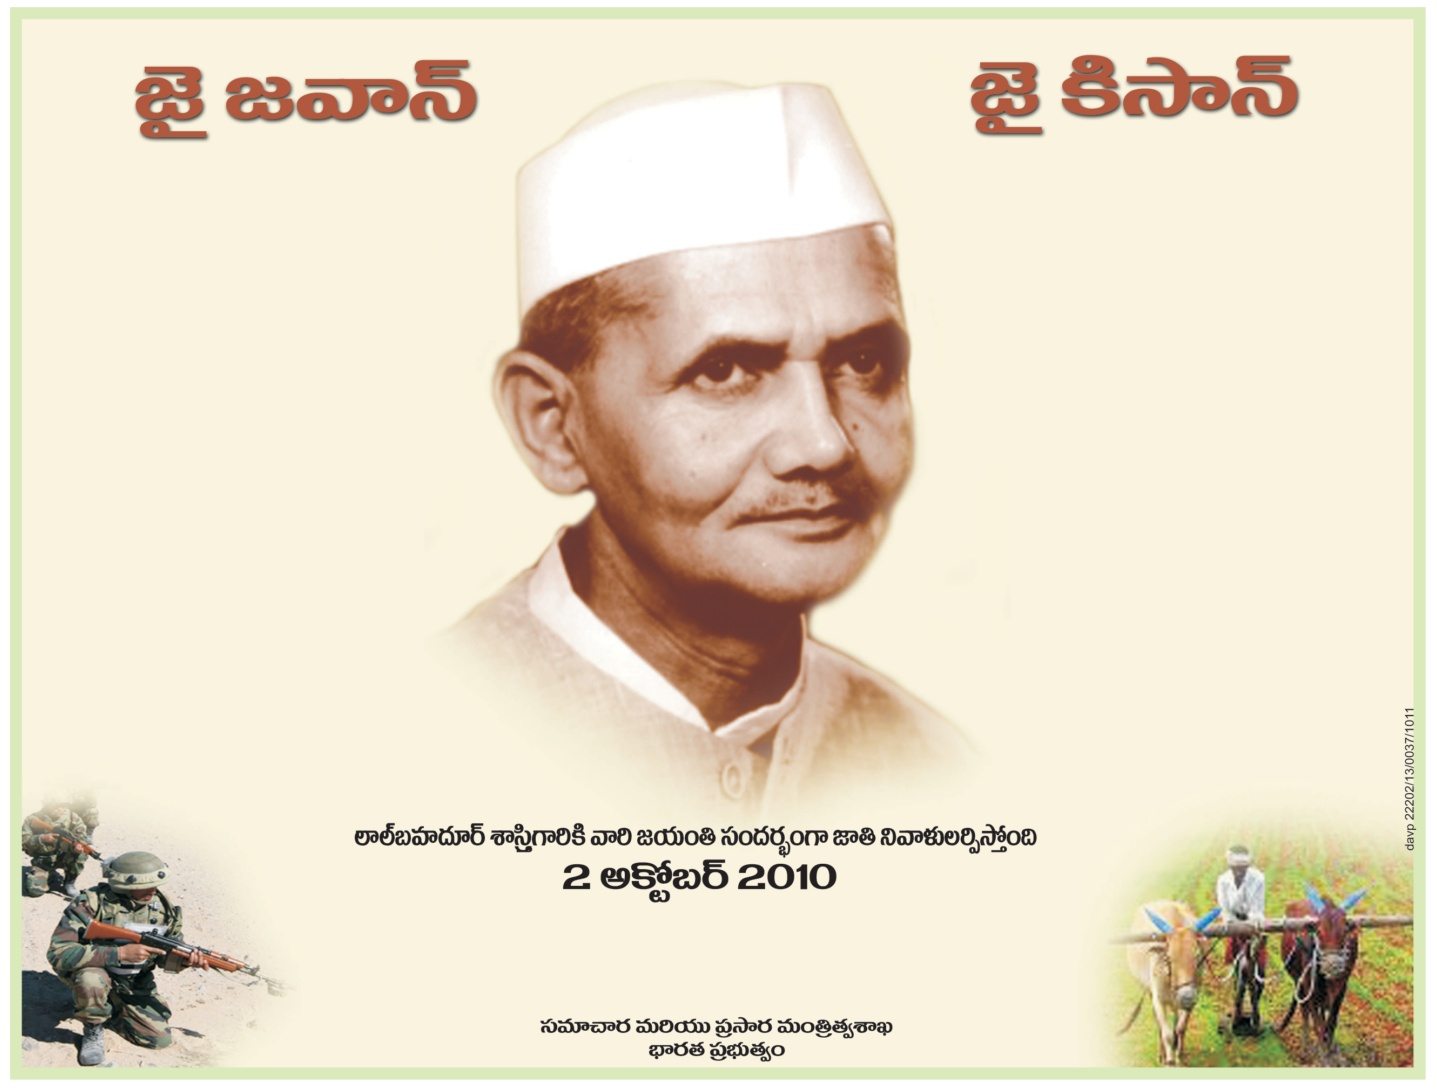 Freedom Fighters Wallpapers India   WwwProteckmachineryCom 2 1437x1092